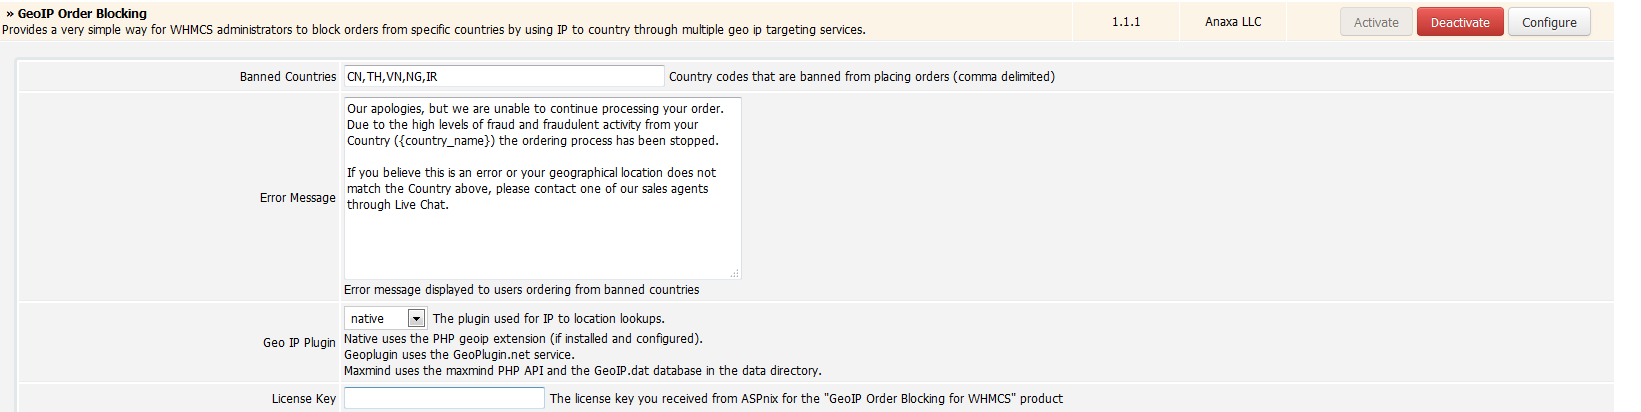 GeoIP Order Blocking - WHMCS Marketplace